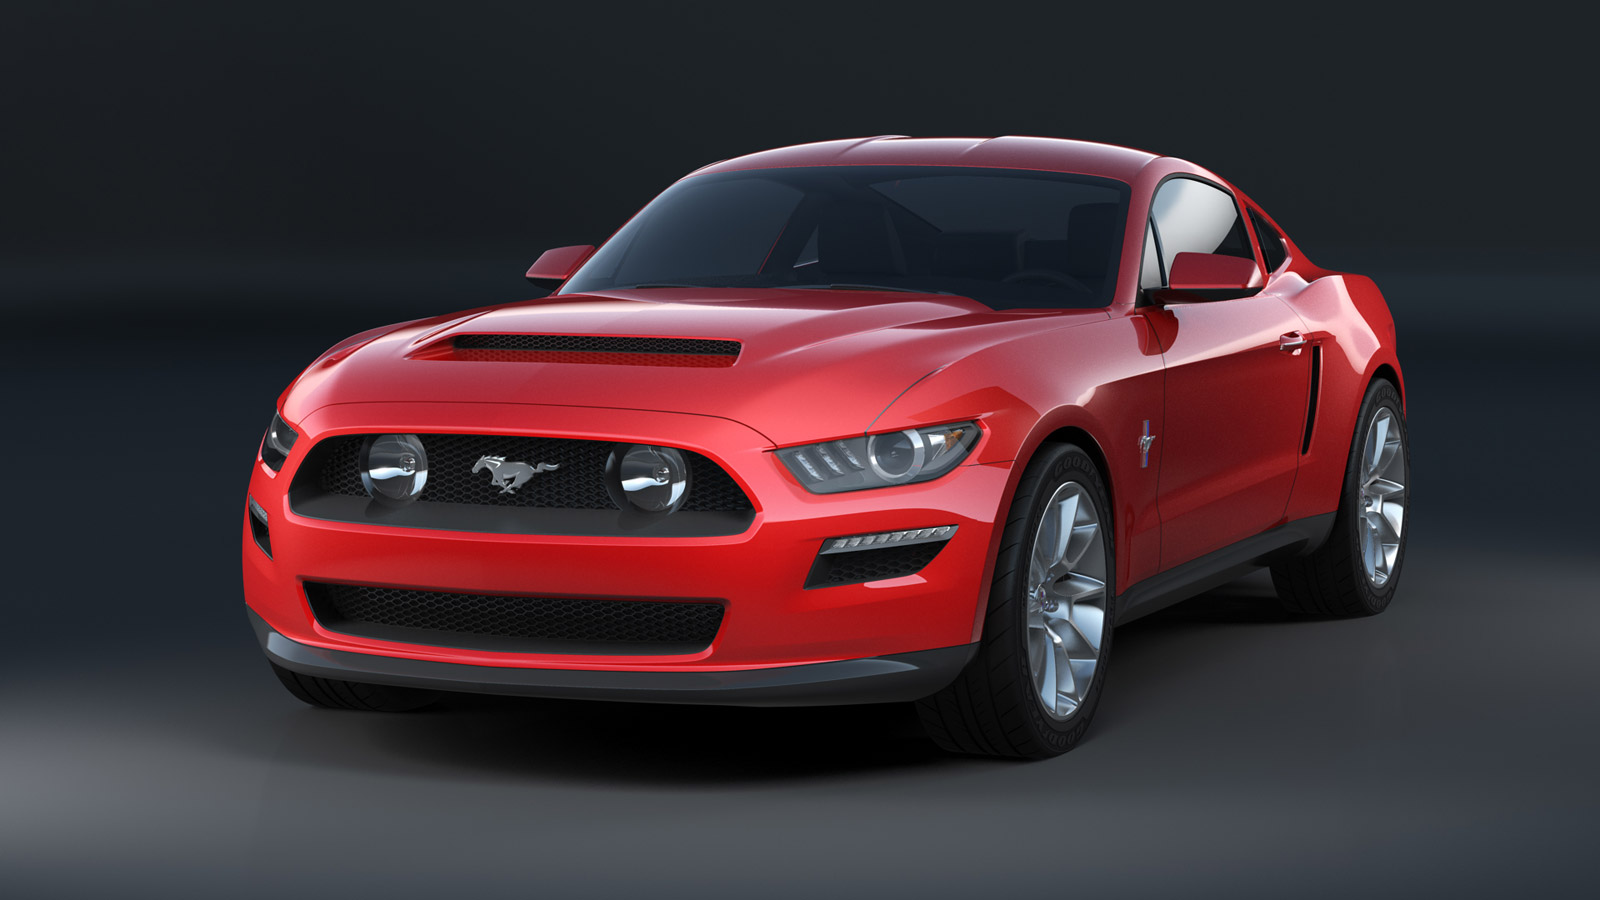 This Is What The 2015 Ford Mustang Might Have Looked Like